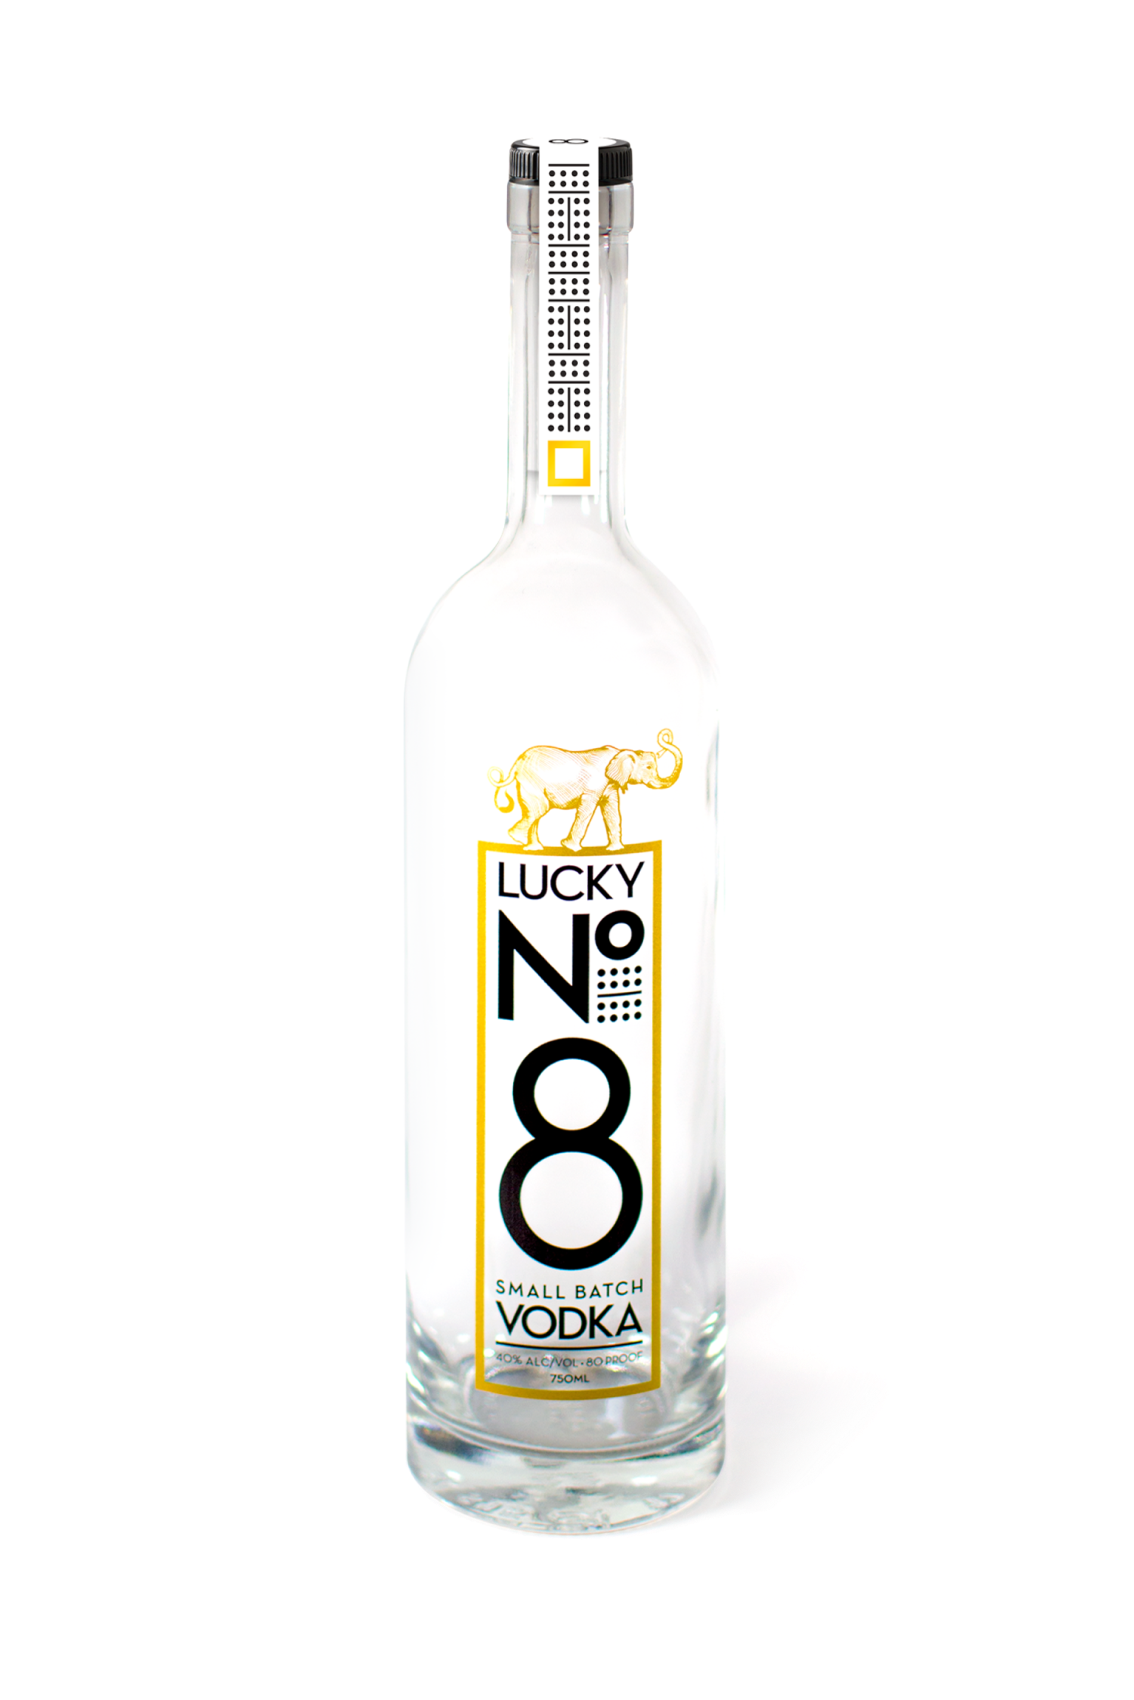 Bottle Lucky No.8 vodka